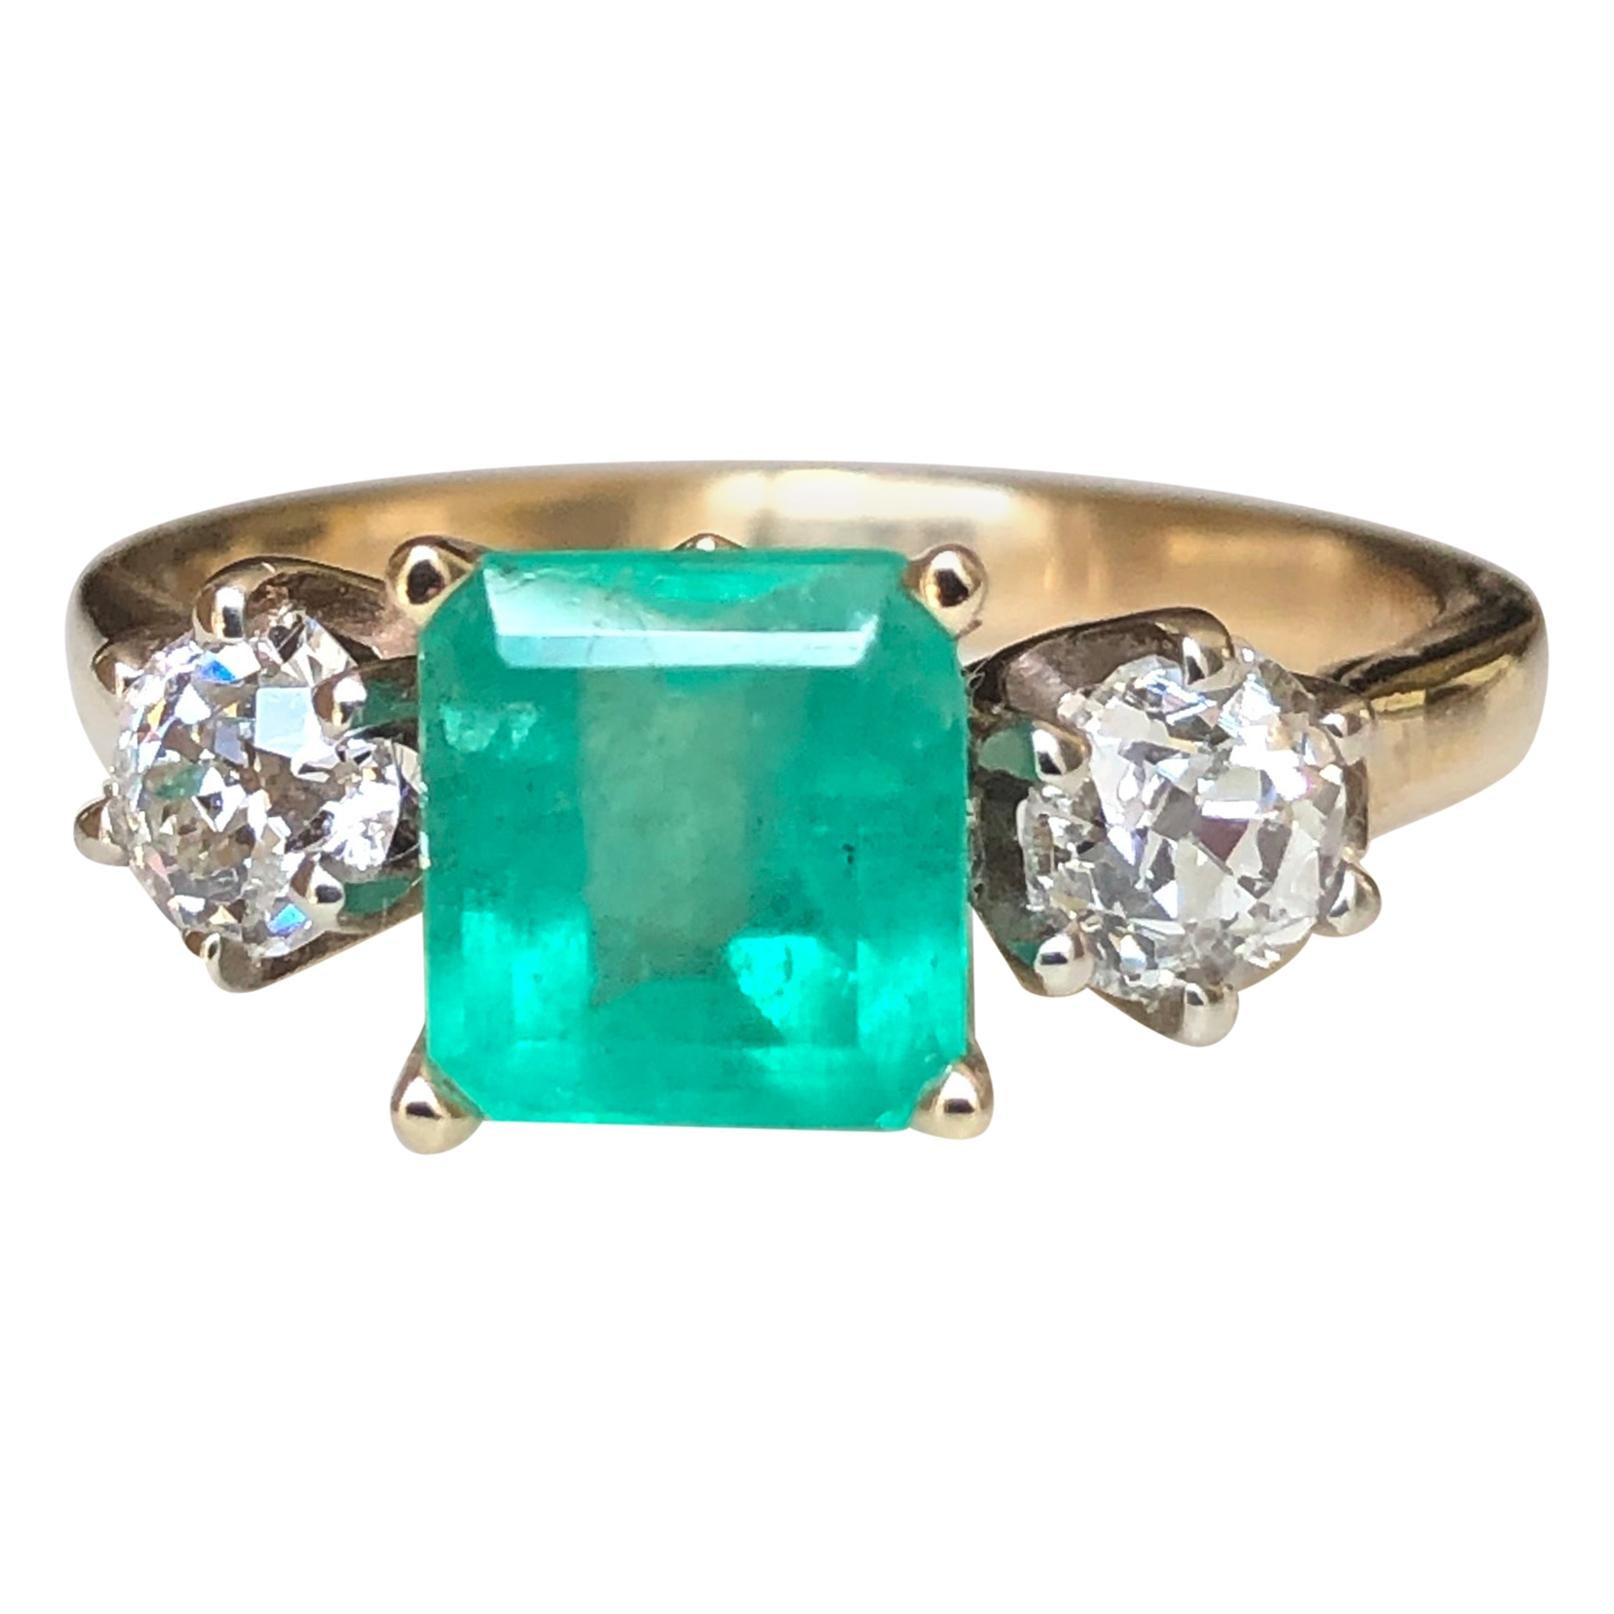 2.33 Carat Natural Colombian Emerald Old European Diamond Engagement Ring Gold